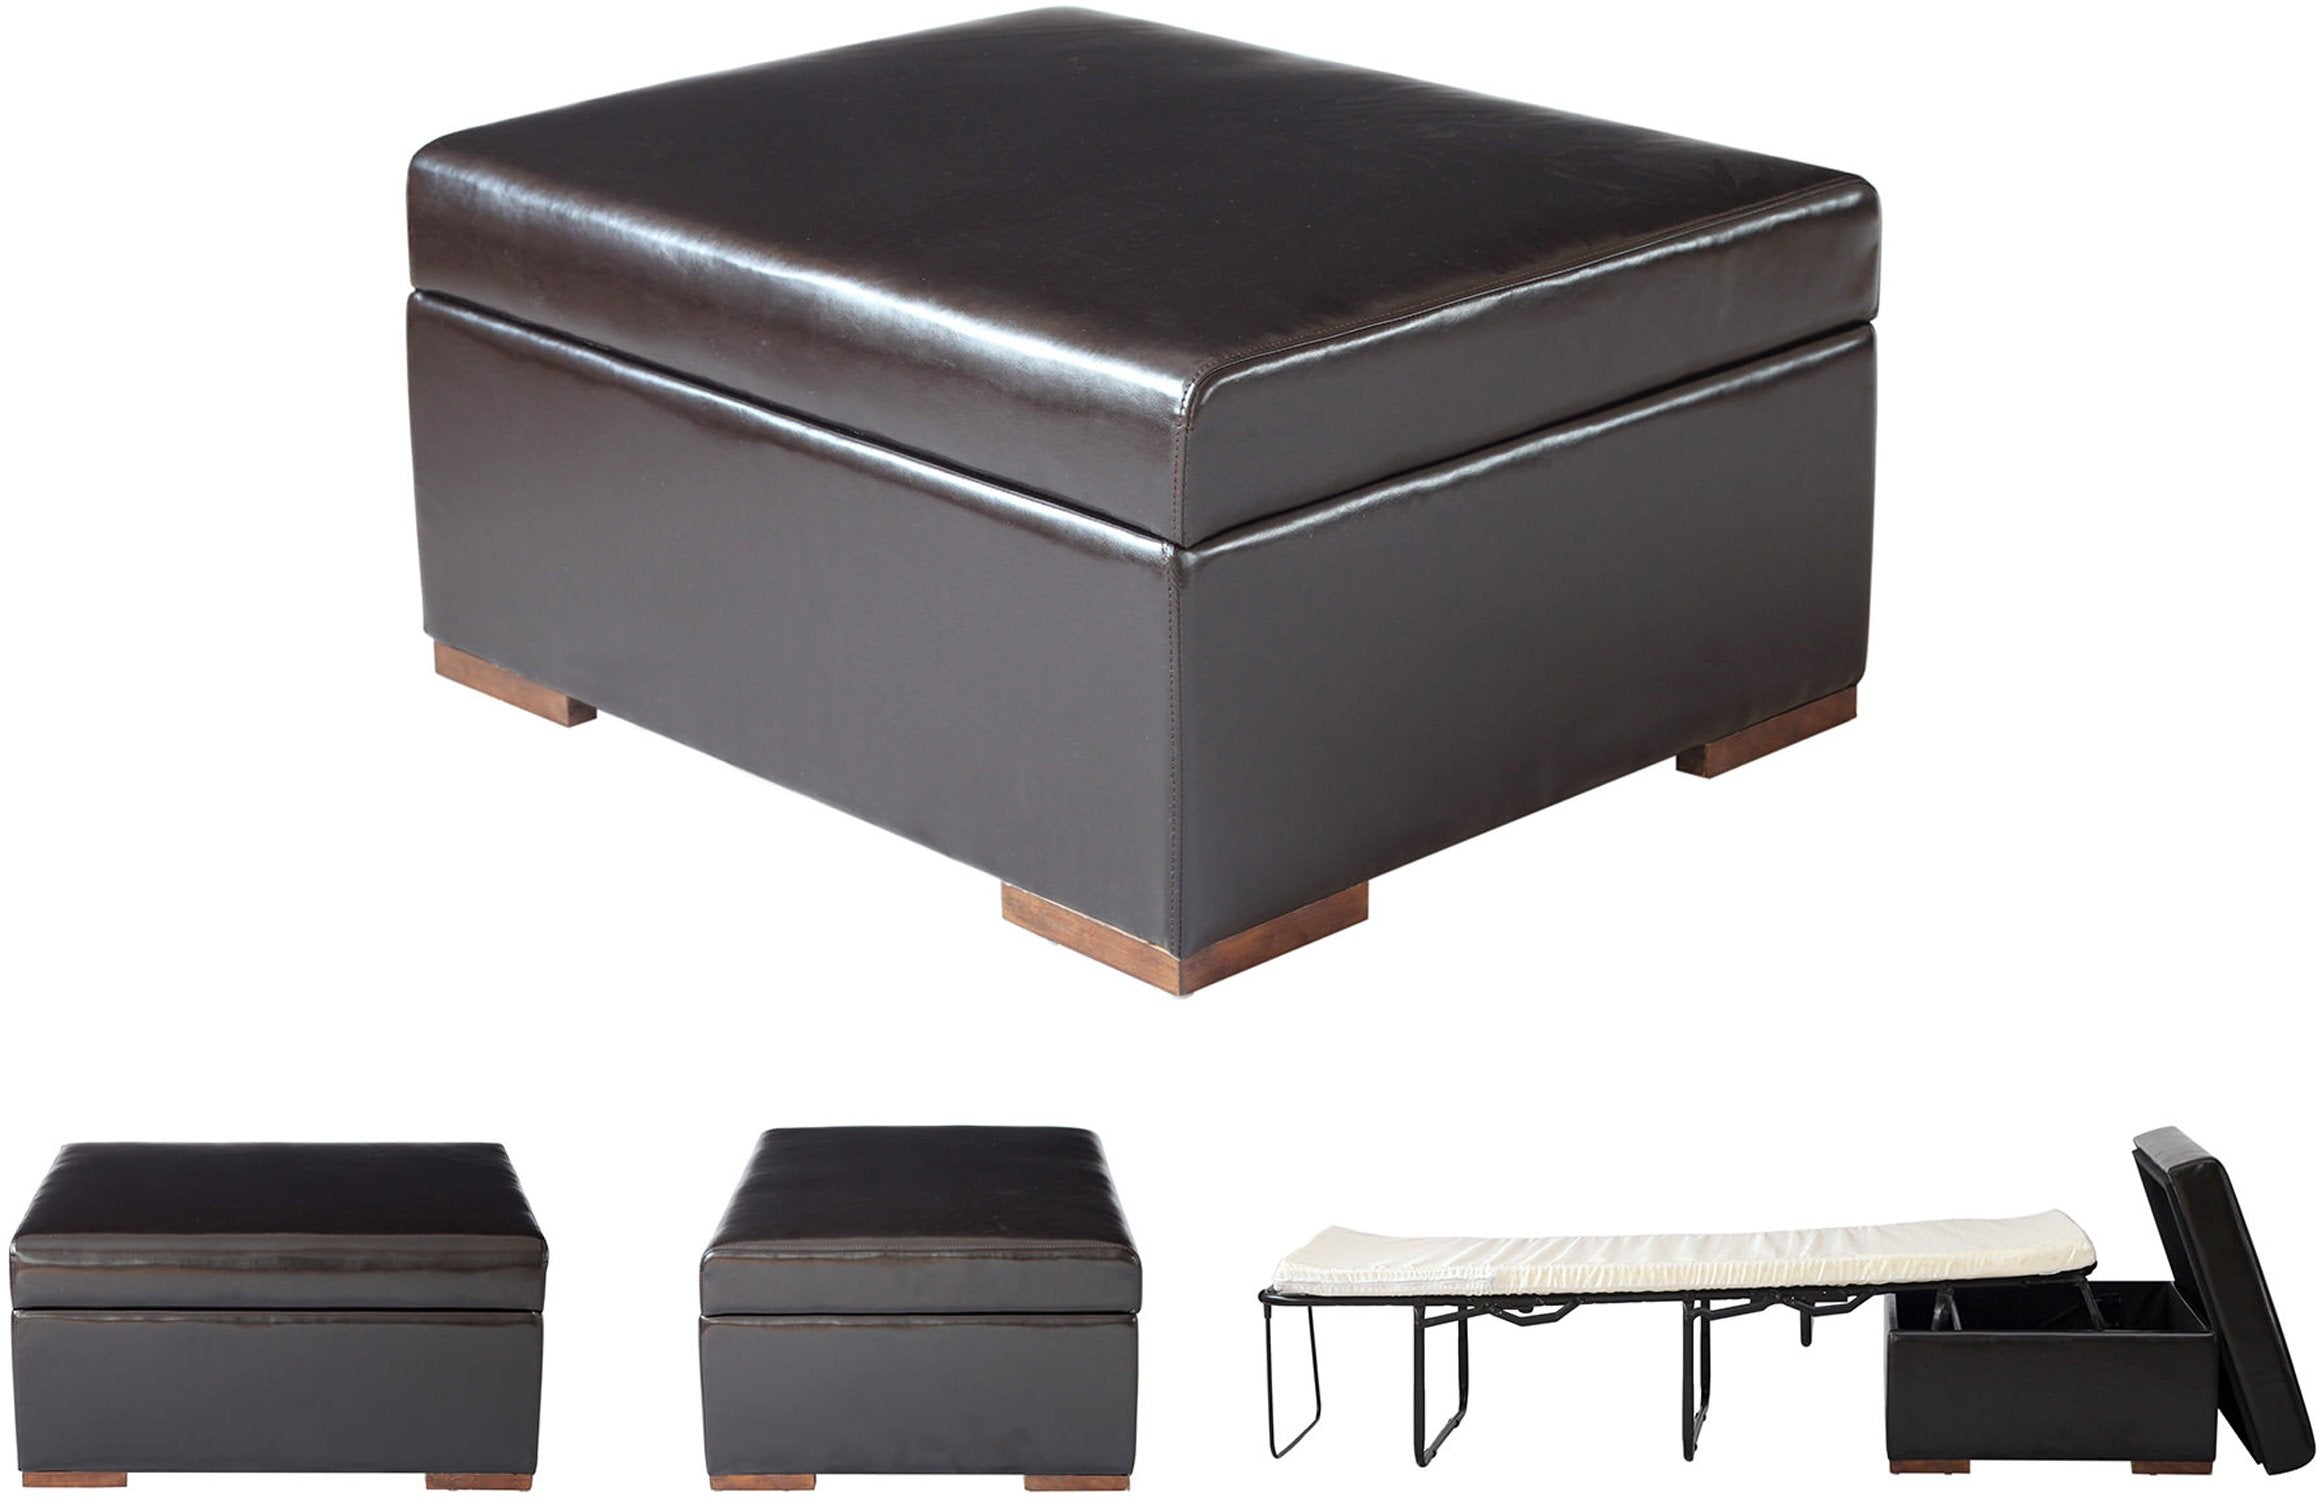 iBED PC777 iBED Convertible Ottoman Guest Bed in Dark Espresso